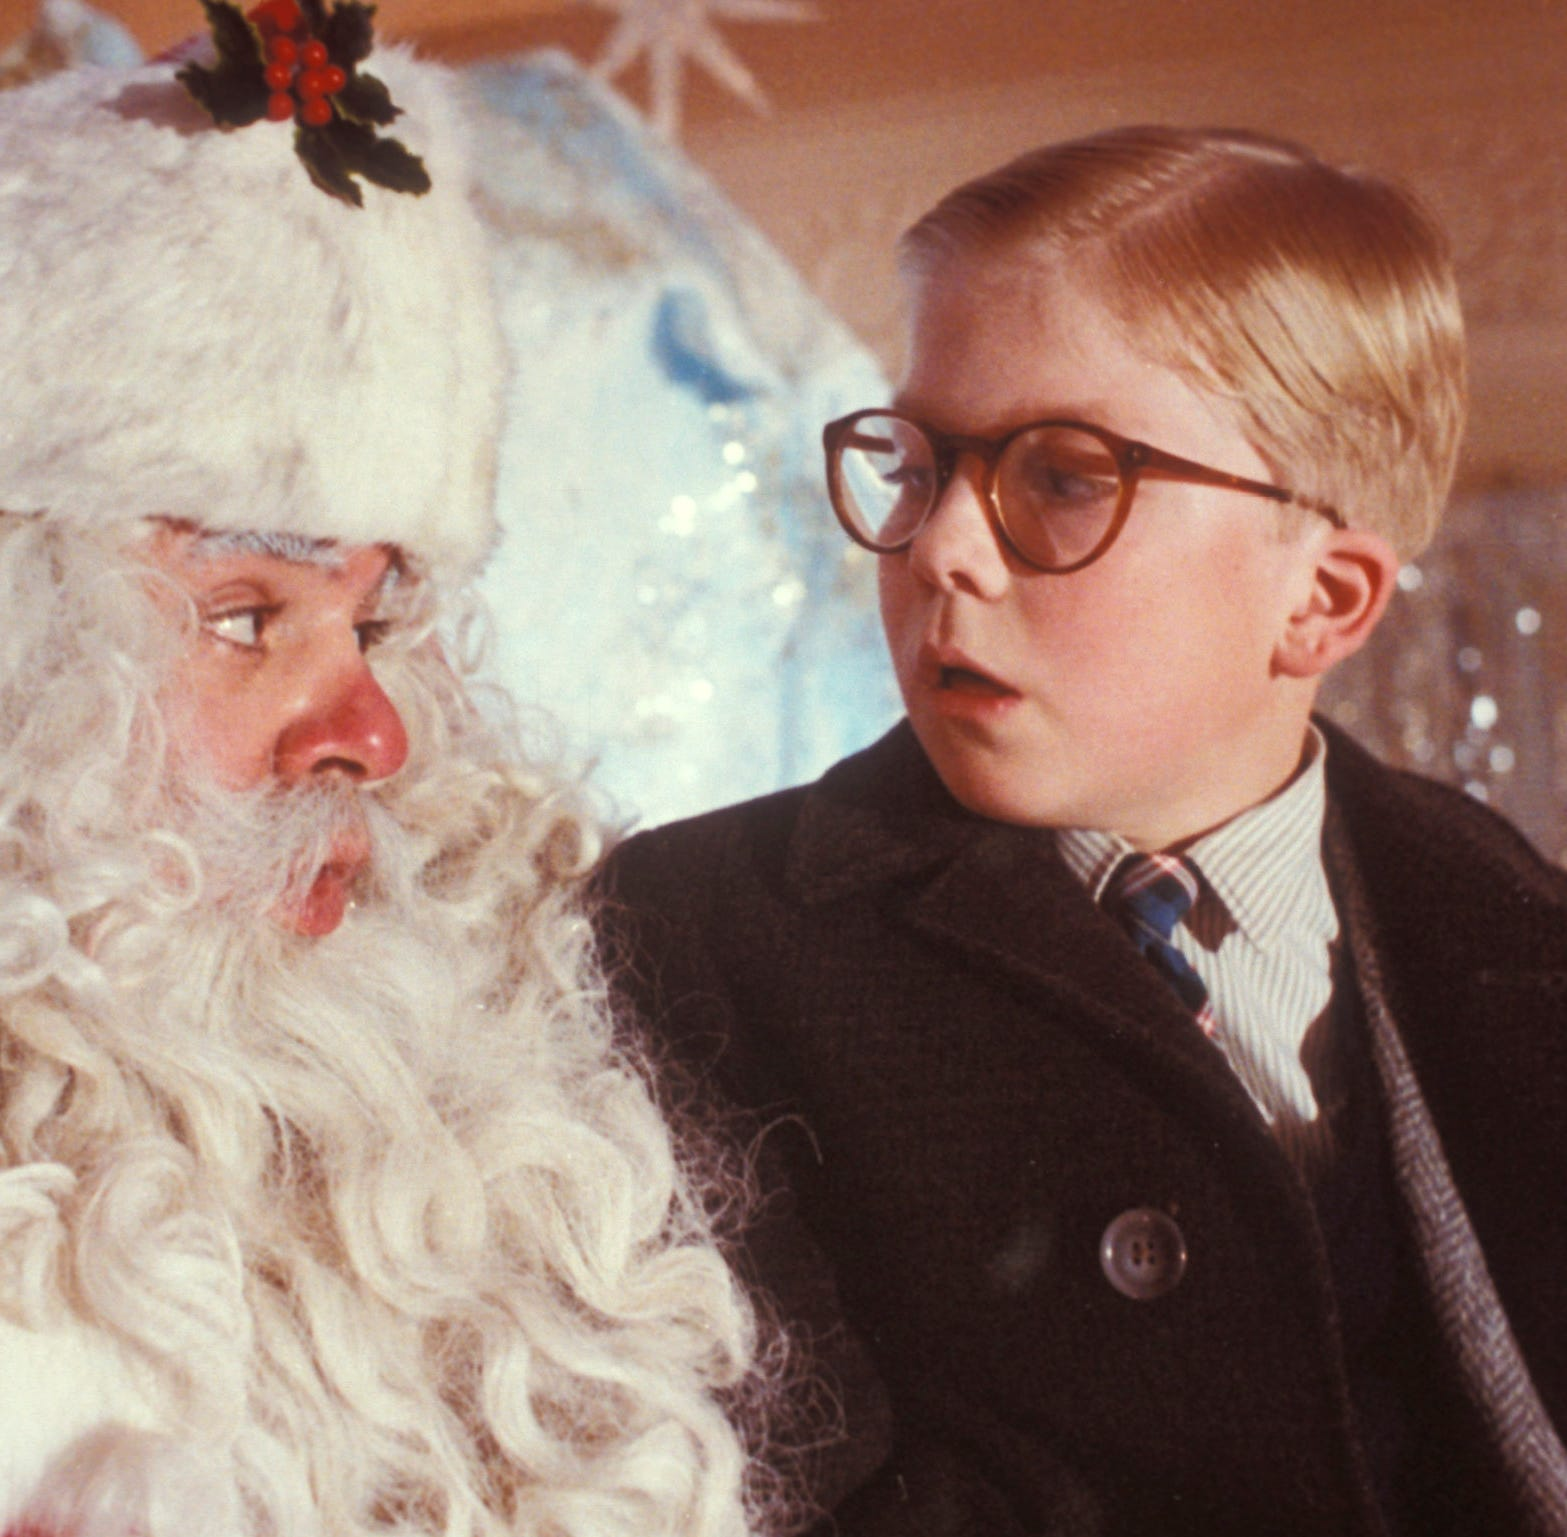 Visalia Fox celebrates 'A Christmas Story' 35-anniversary with special screening